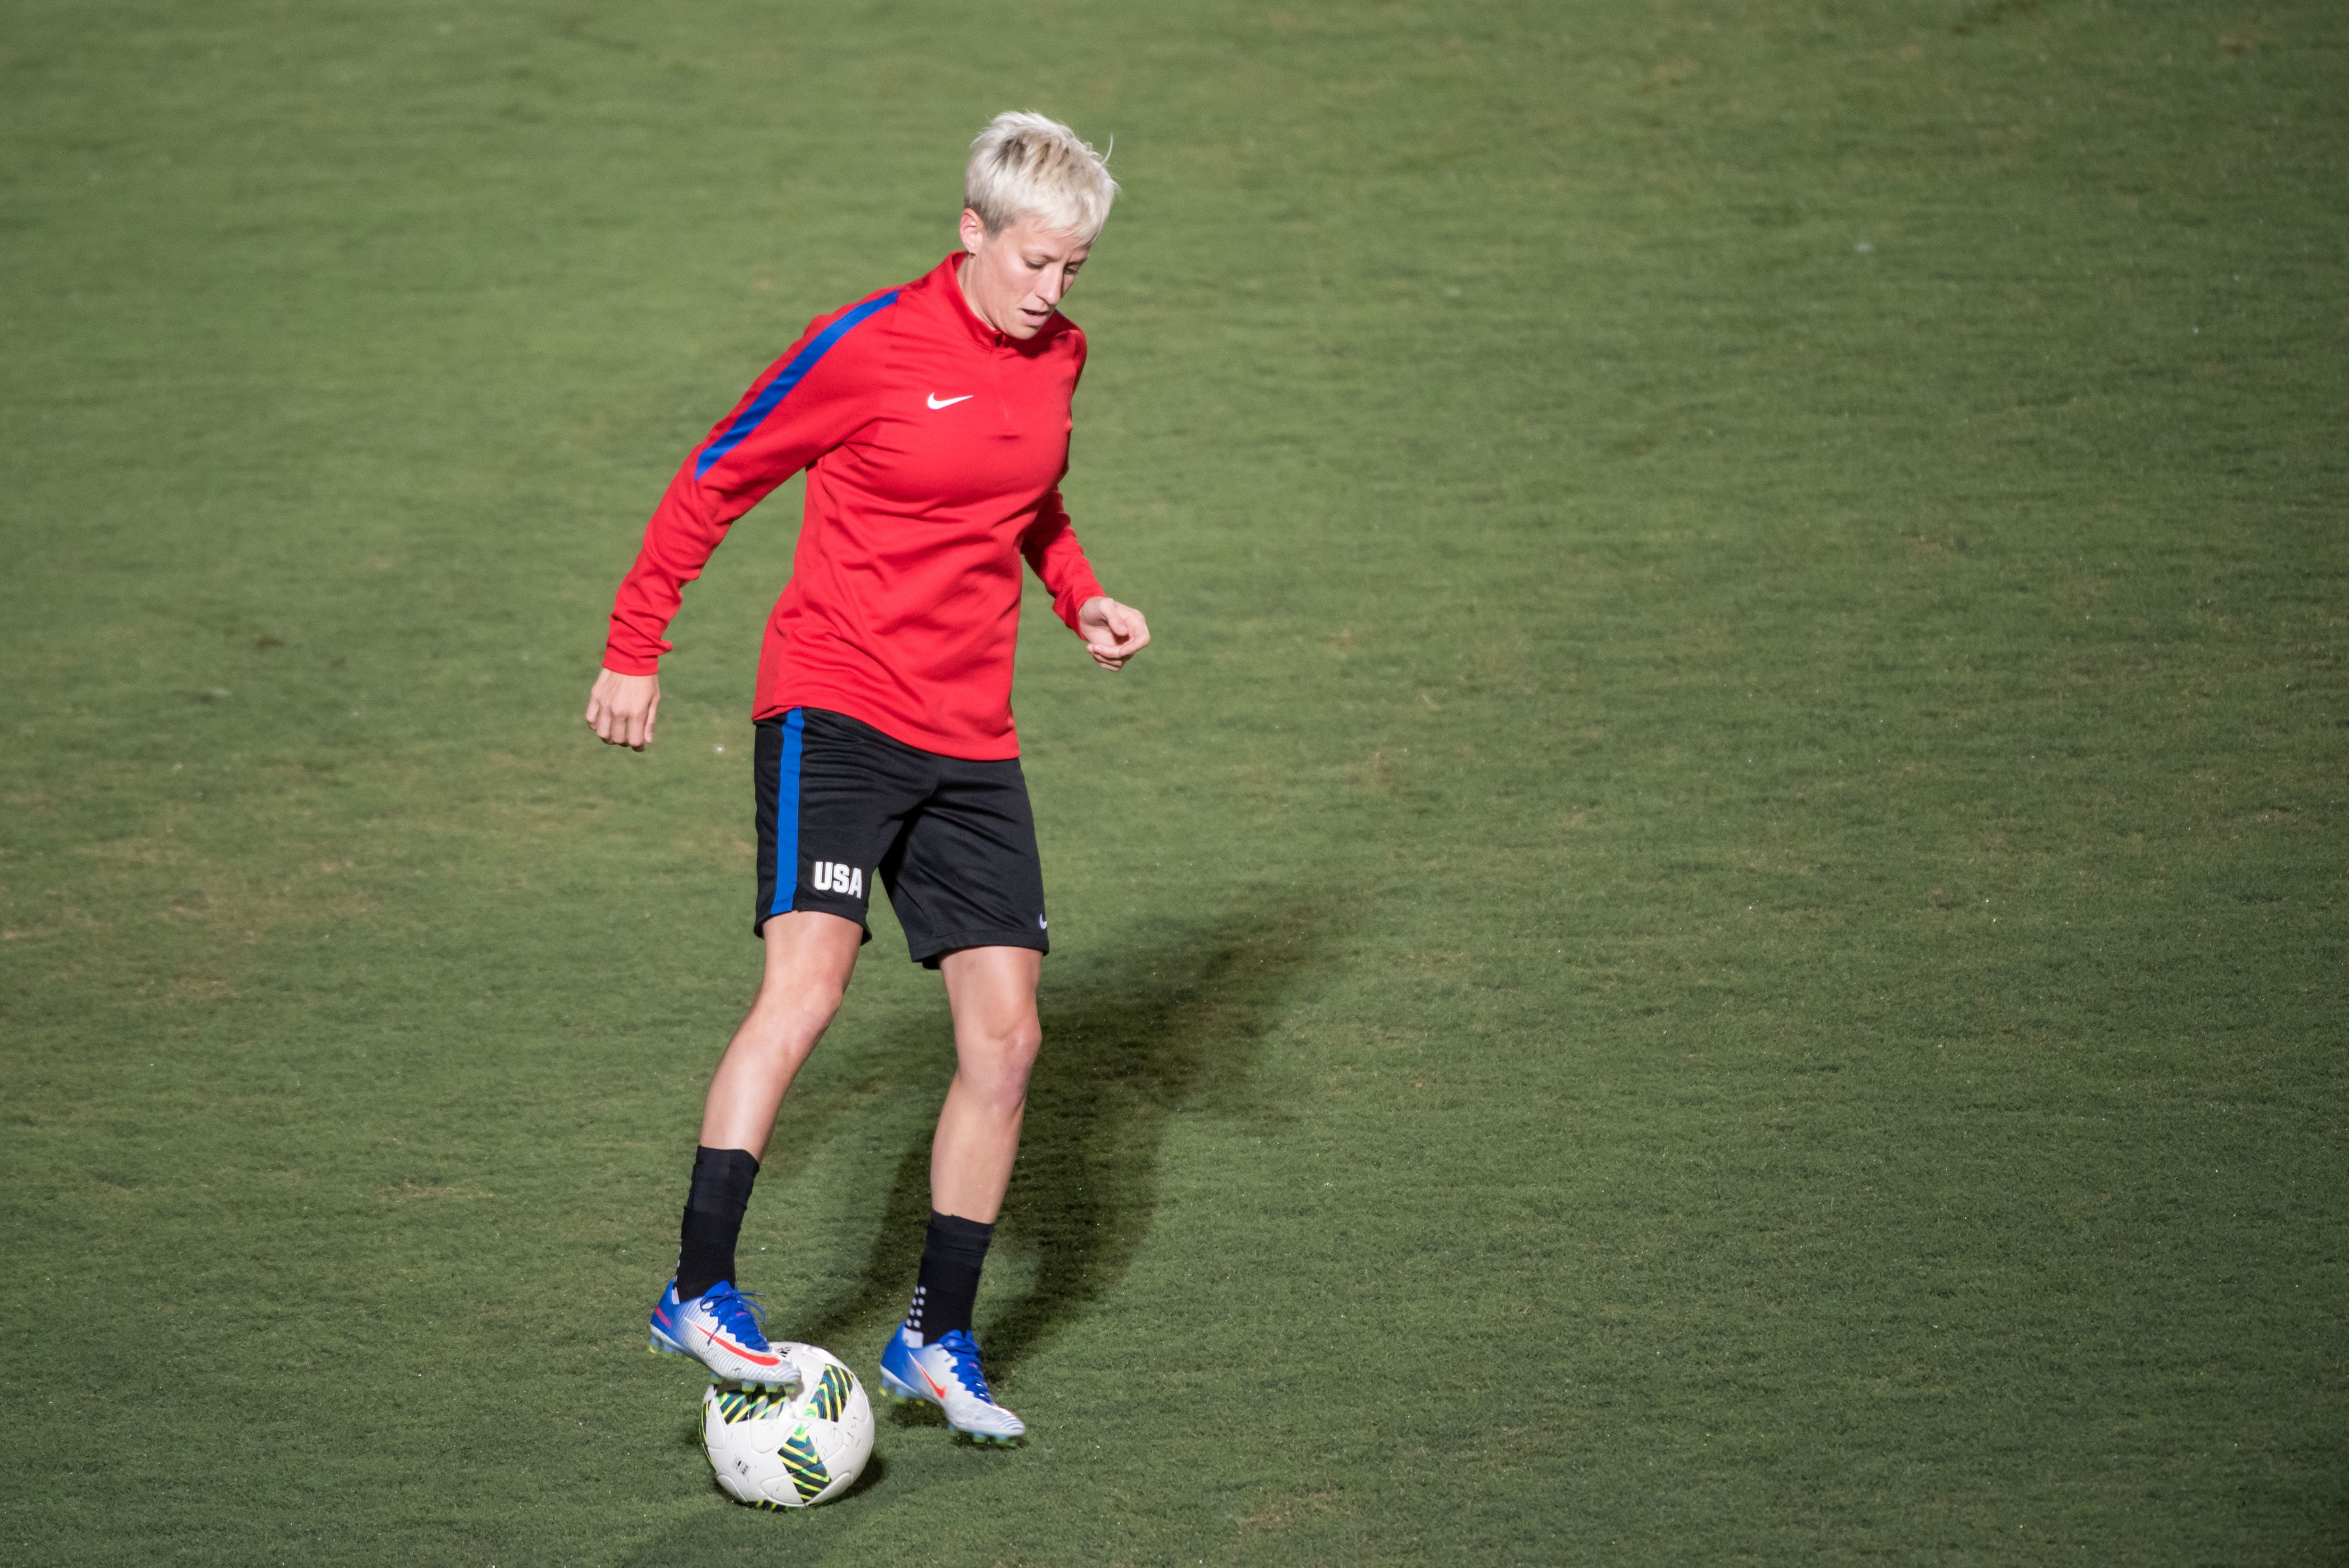 """U.S. midfielder Megan Rapinoe, who is openly gay, called the insults """"personally hurtful."""""""